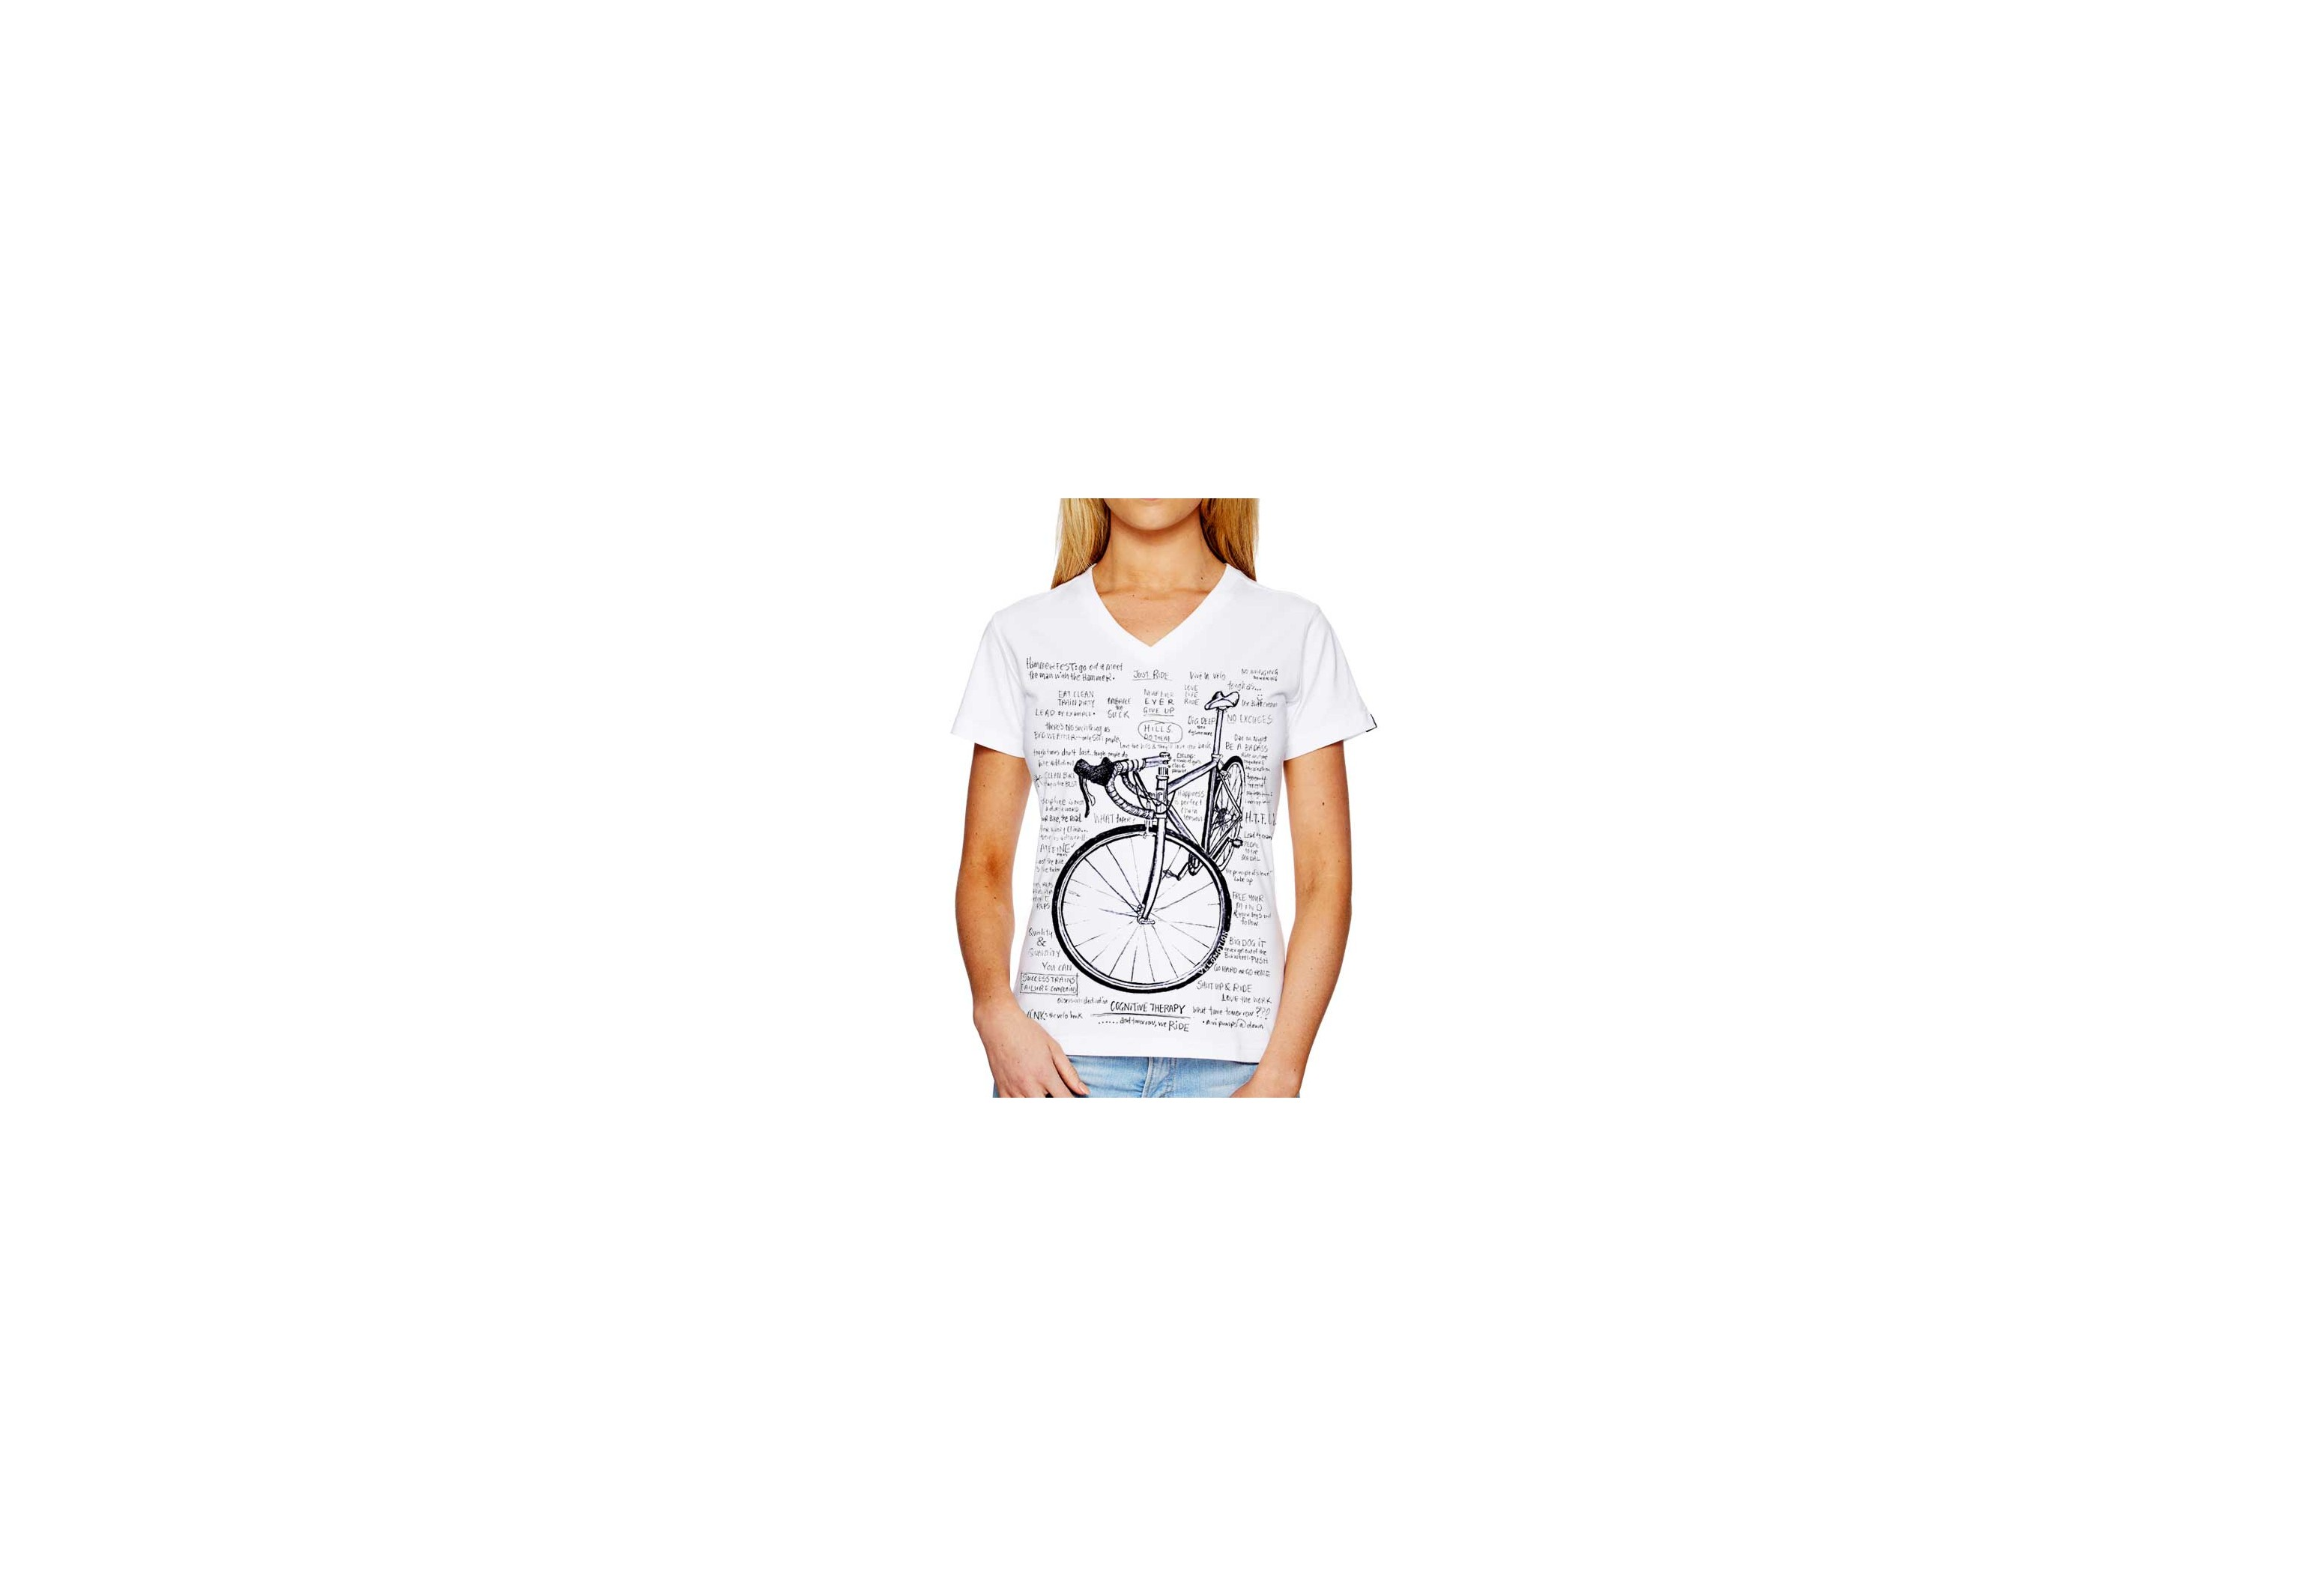 tee-shirt COGNITIVE THERAPY - femme - blanc 01a1f1b4eb2e